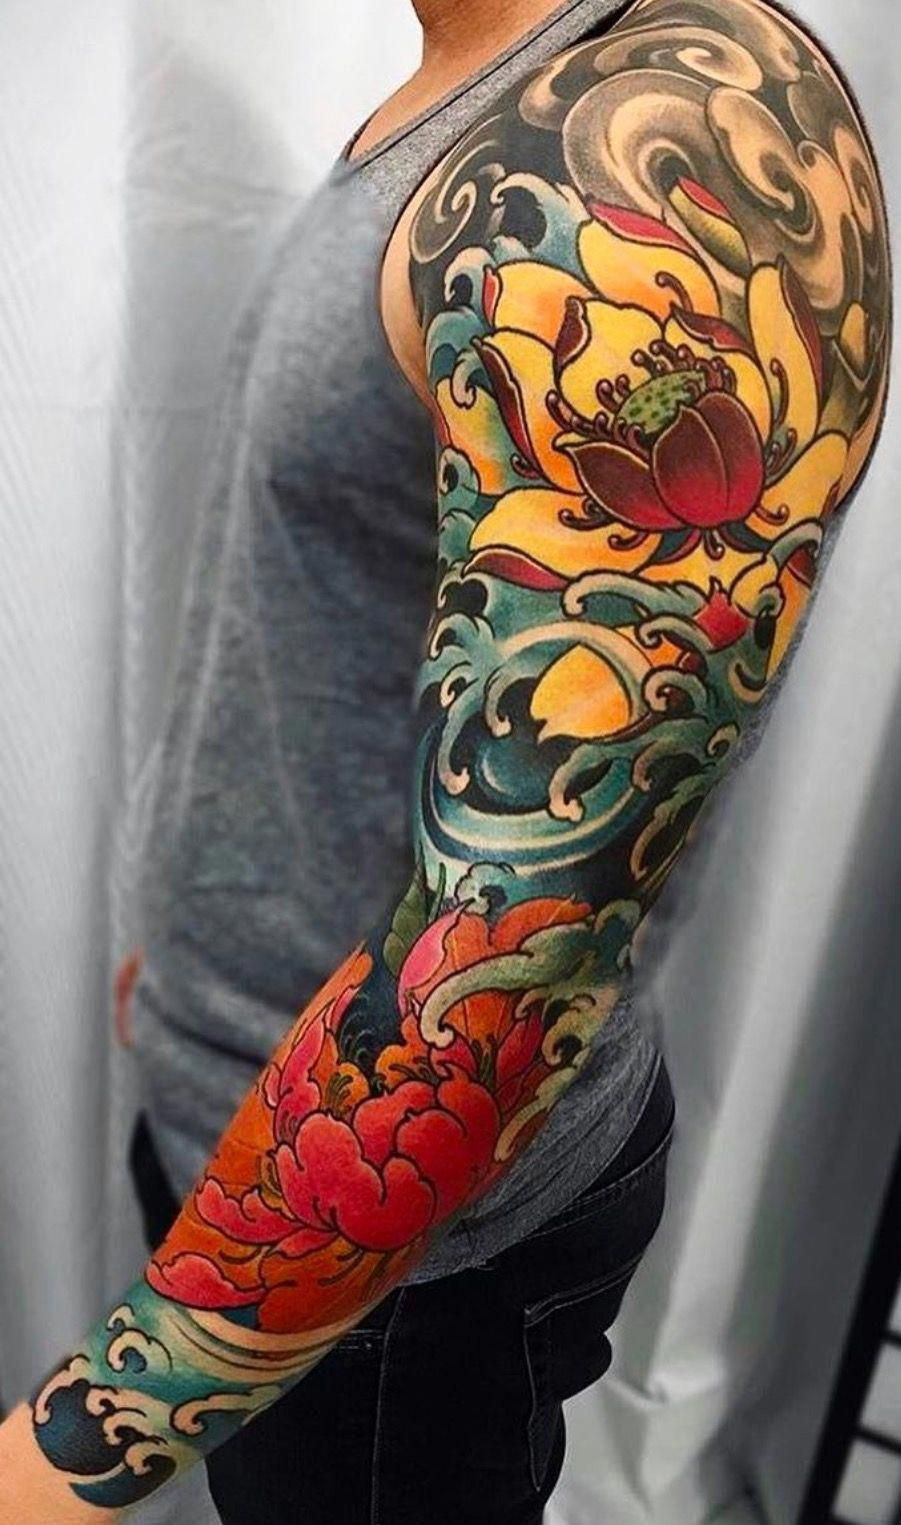 Crashing Water And Clouds Neo Traditional Japanese Japanesetattoos Sleeve Tattoos Japanese Tattoo Full Arm Tattoos